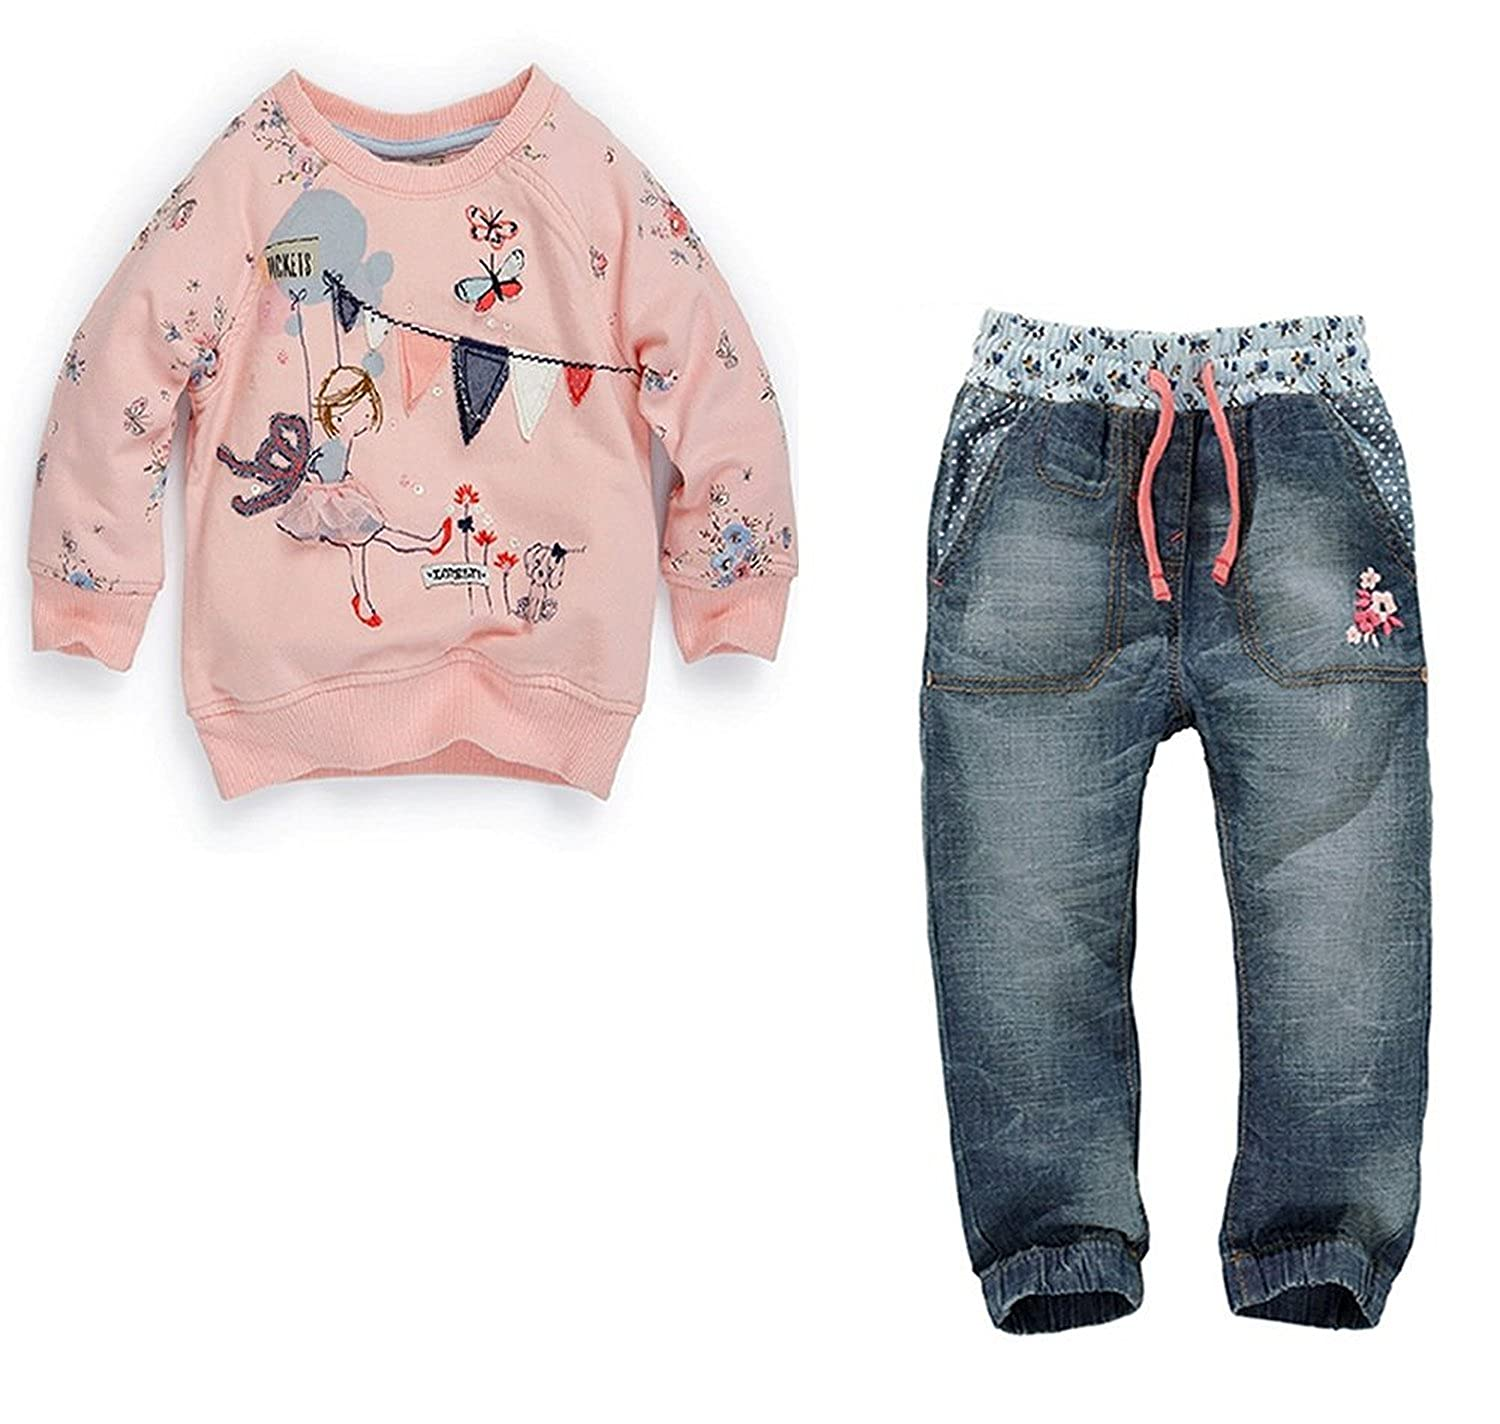 2pcs Baby Kids Boys Cartoon Shirt and Jean Pants Outfits& Set Suits